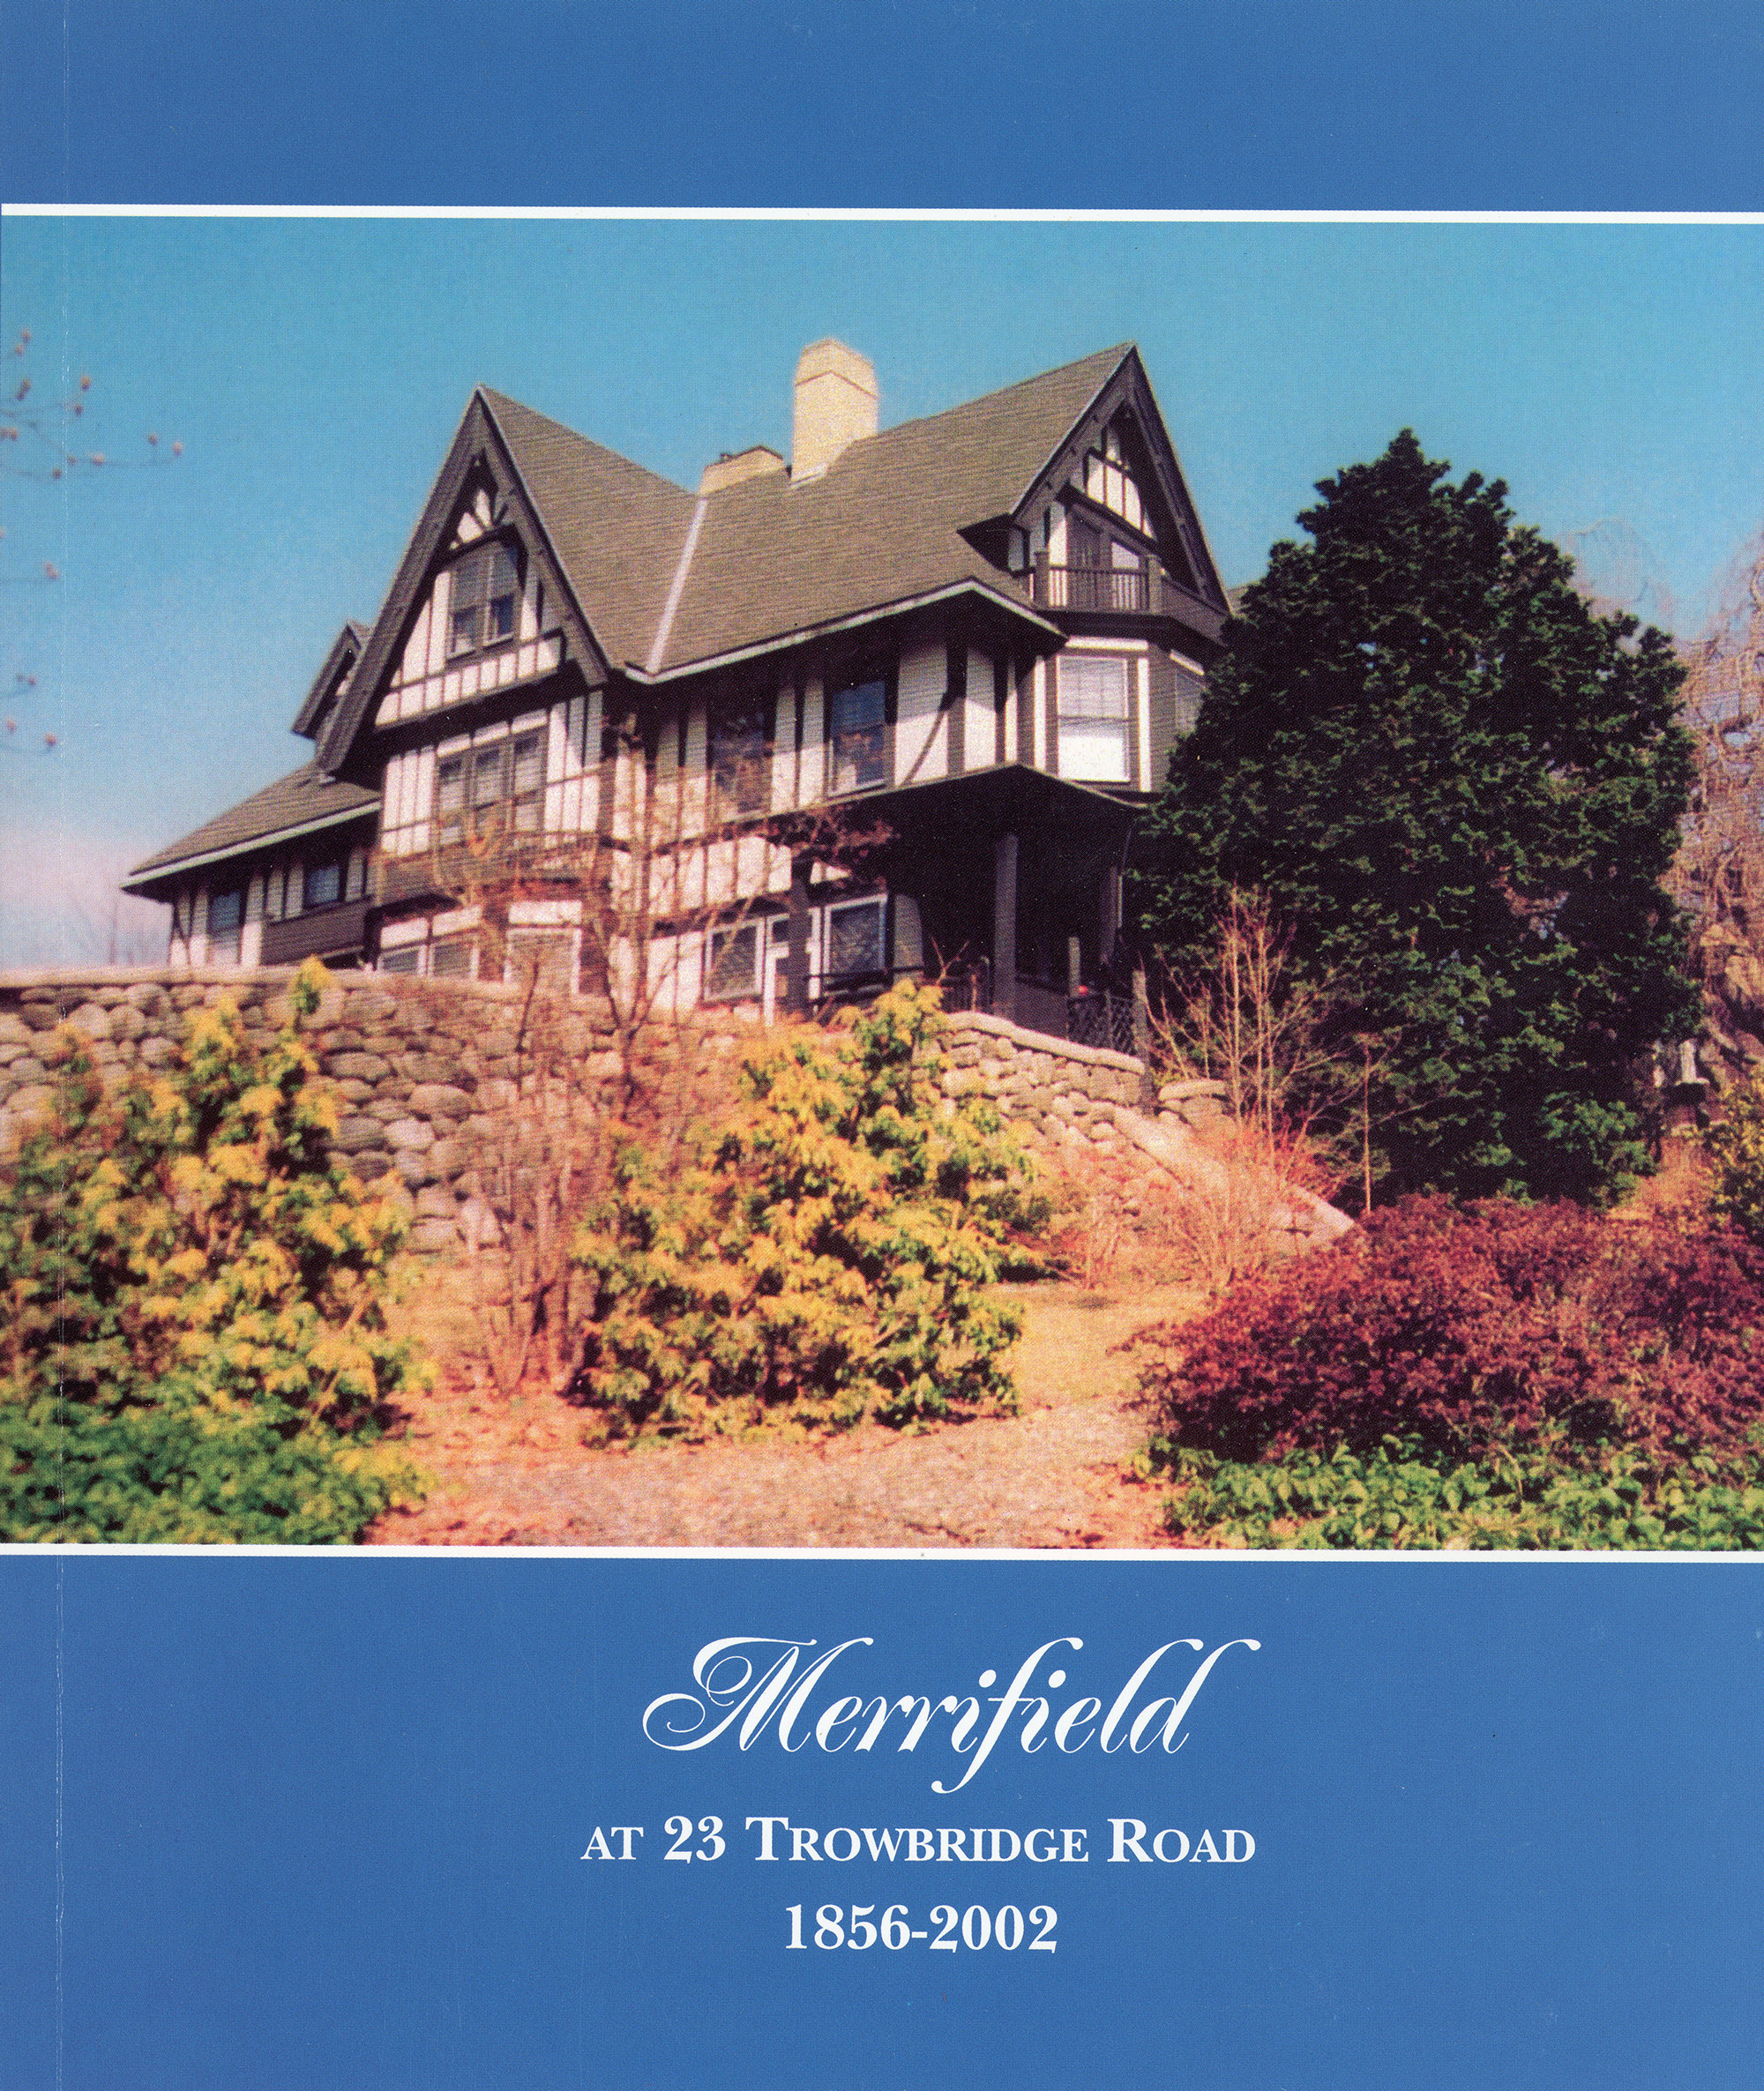 Merrifield at 23 Trowbridge Road by Worcester Historical Museum